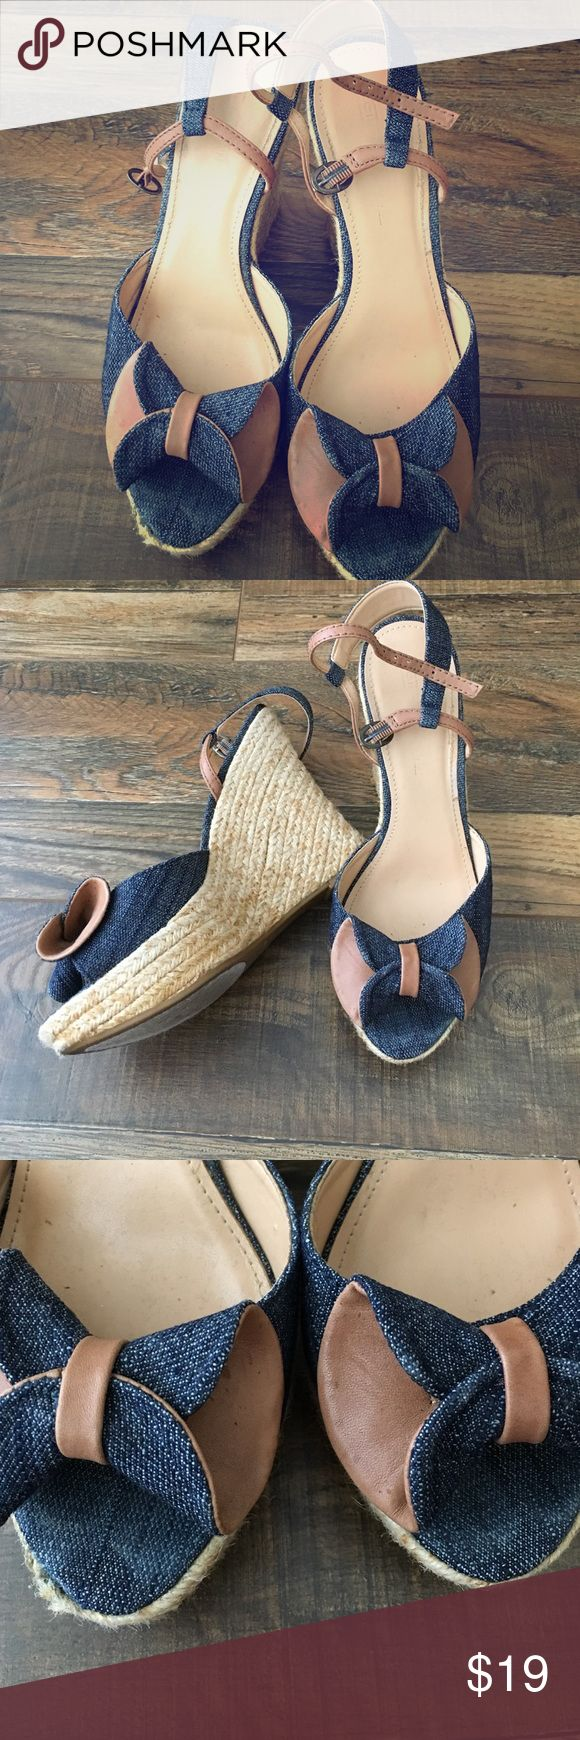 Circa Joan&David Circa Joan&David Wedges. Blue jean bows. Jute two tone sides. Gently worn Joan & David Shoes Wedges